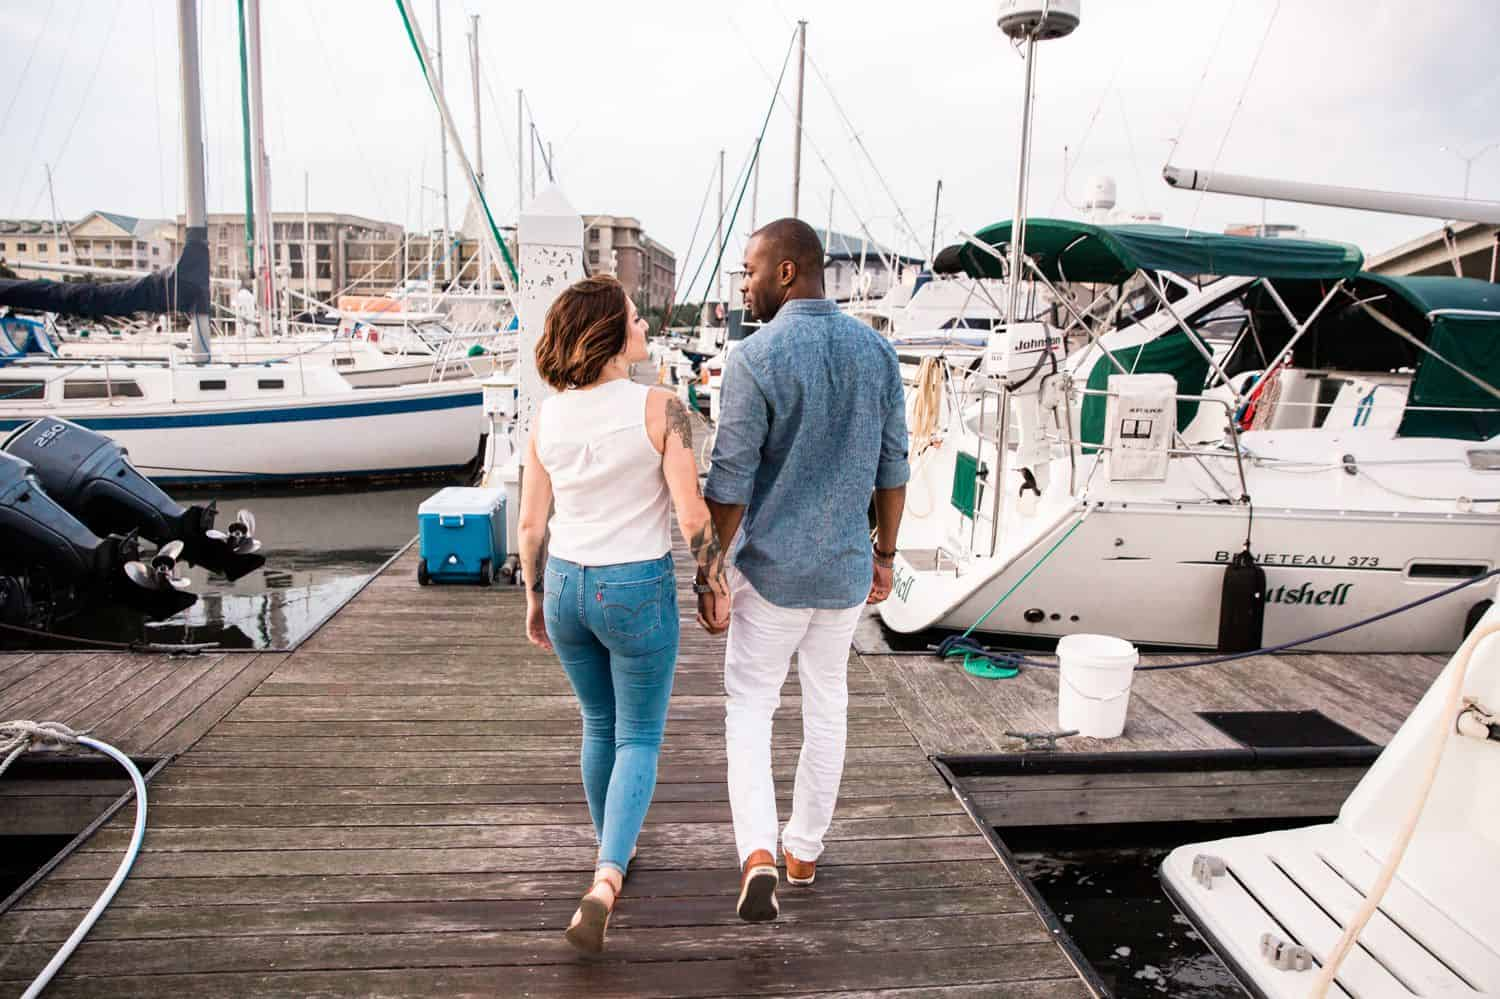 A man and woman walk along the dock of the bay with yachts and sailboats in the background.